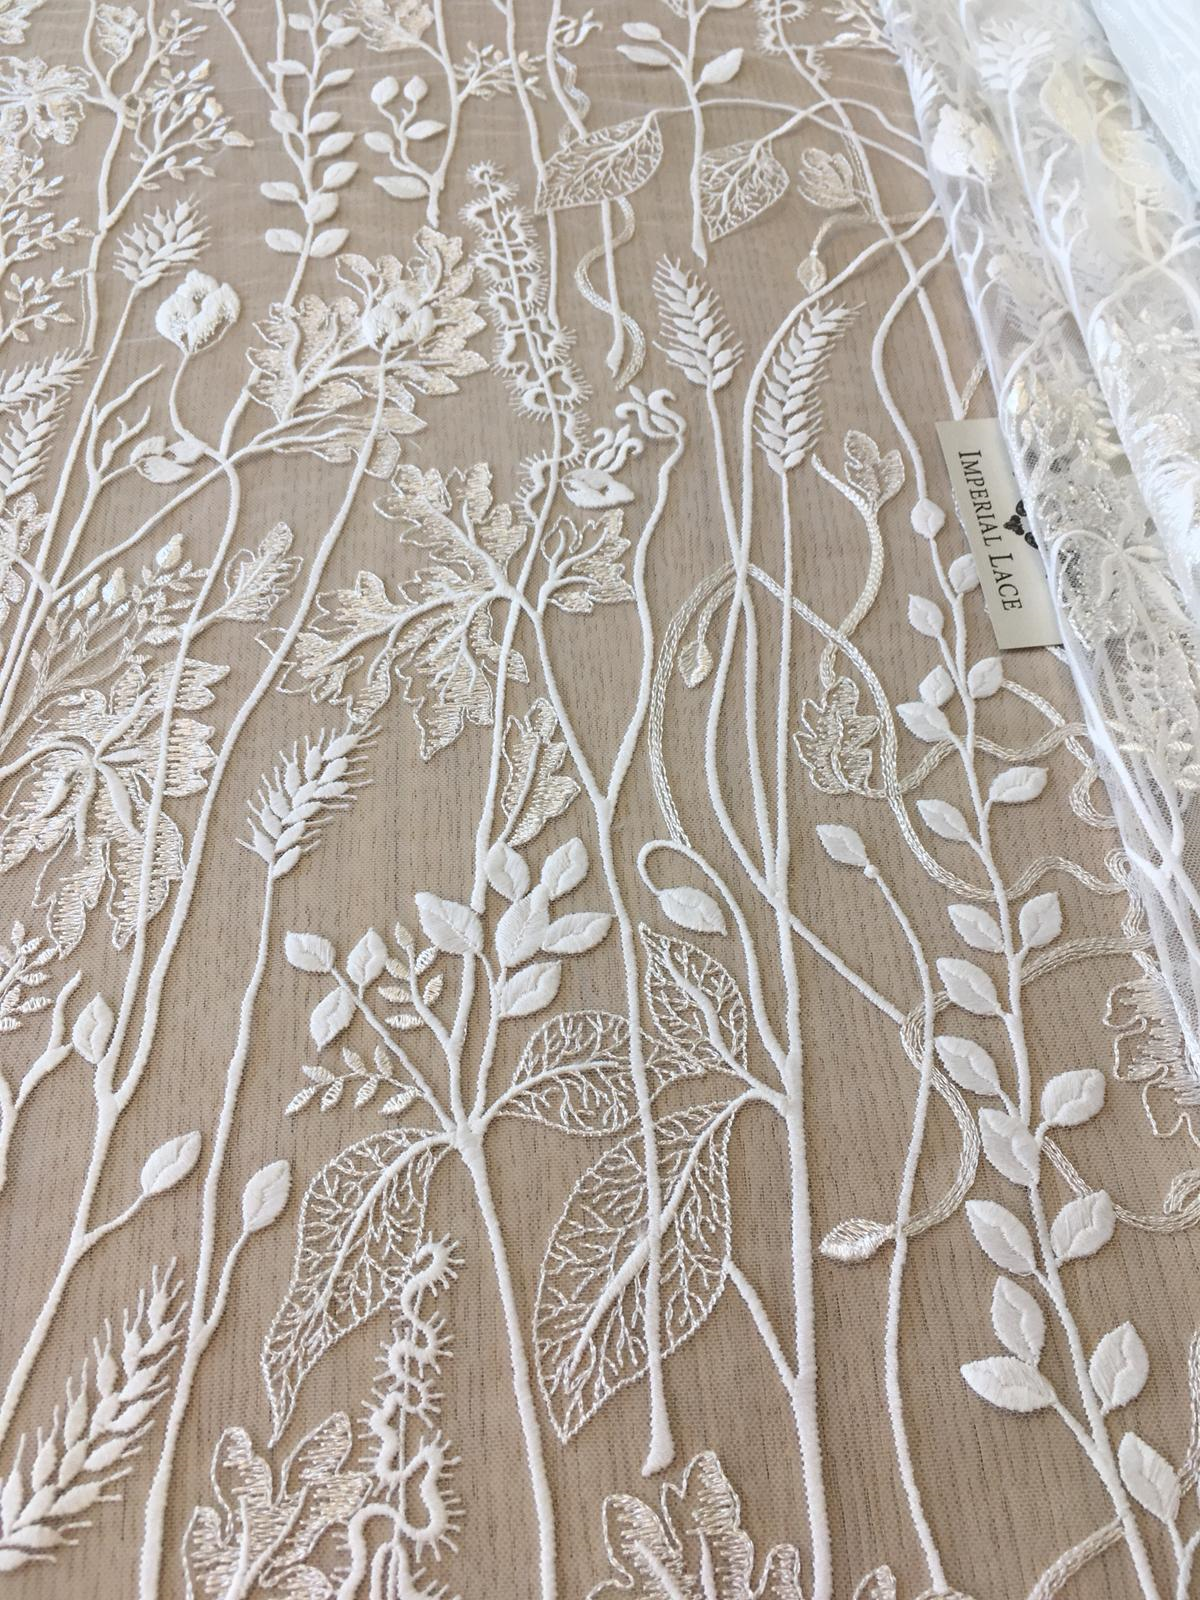 0.9x1.3 meter wide ivory mesh tulle gauze dress embroidered veil lace fabric cloth clothing G30E393P0927V free ship